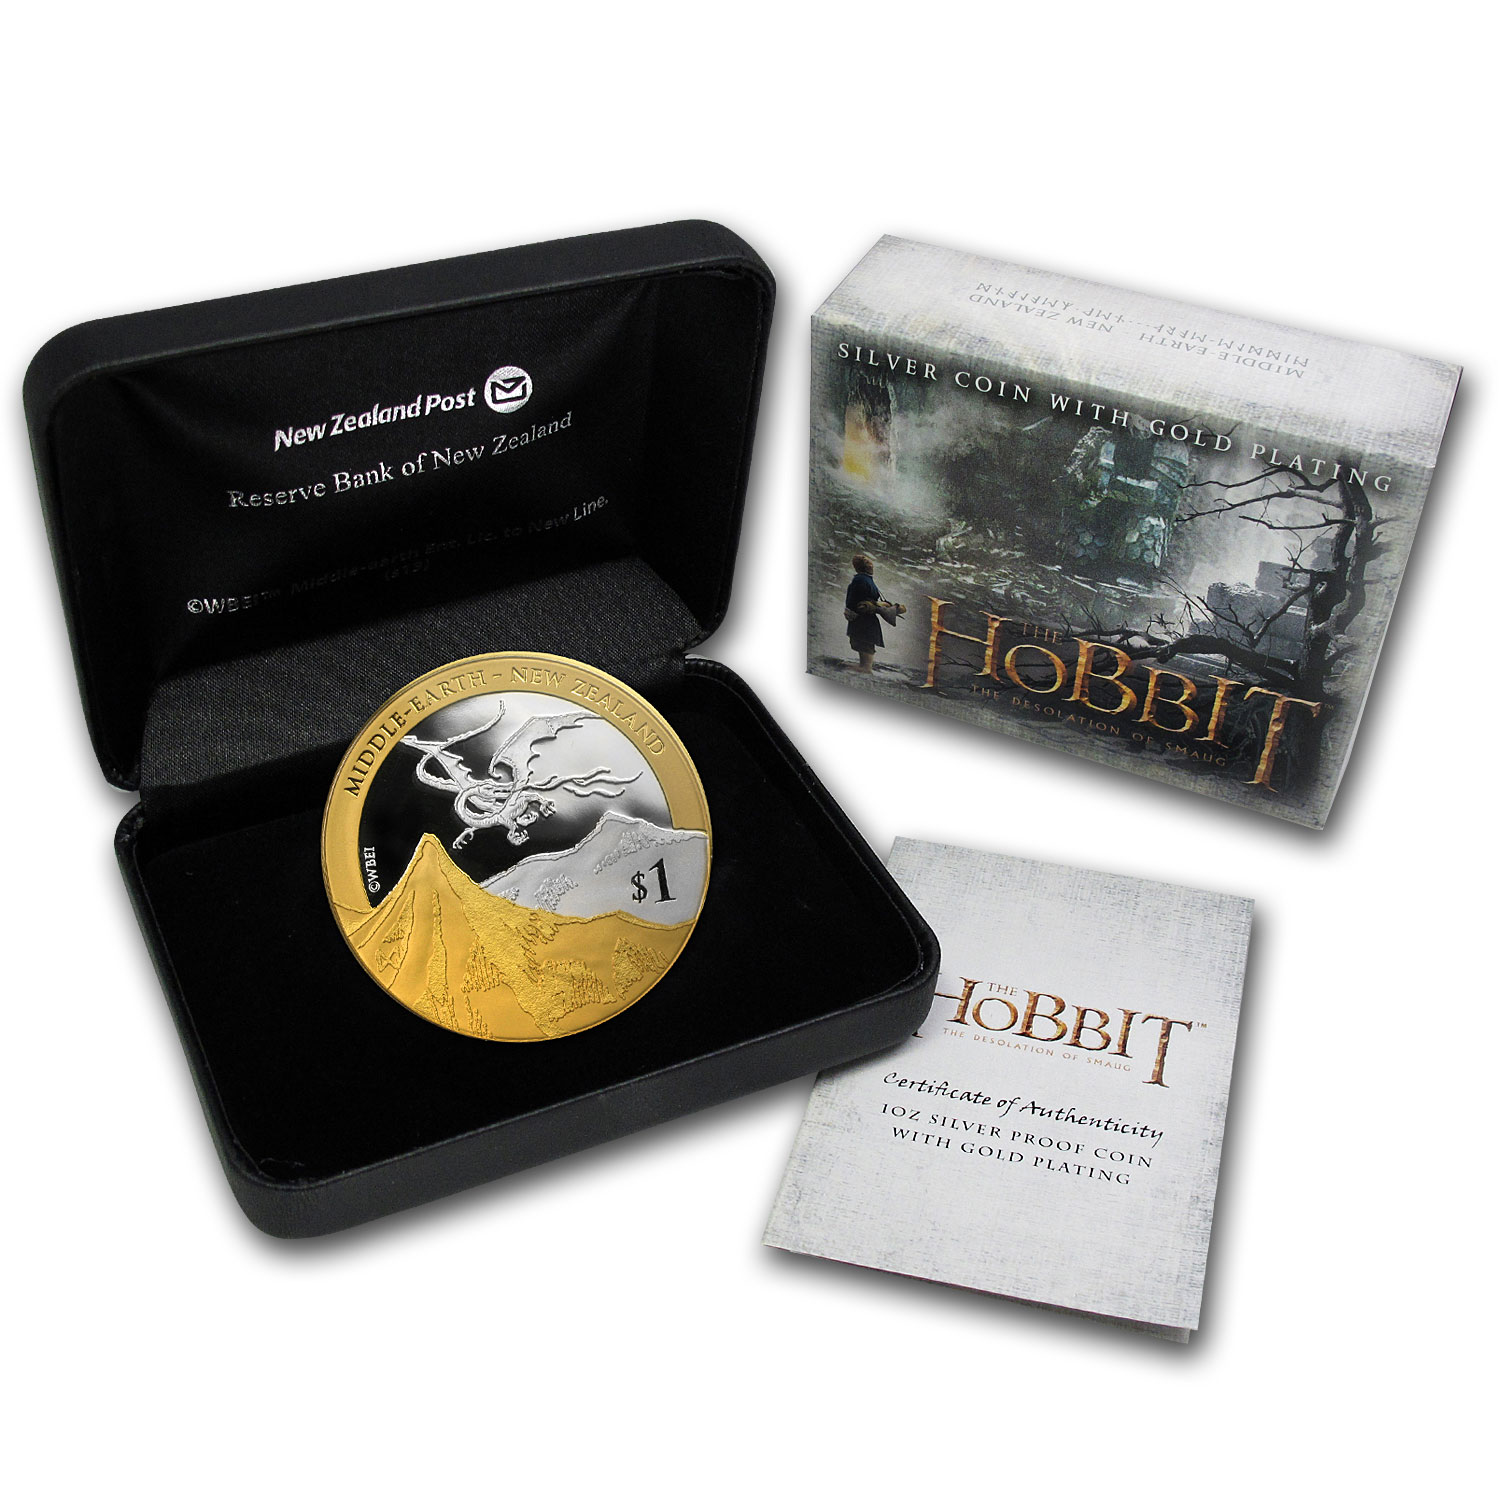 2014 The Hobbit - The Desolation of Smaug Gold Plated Silver Coin